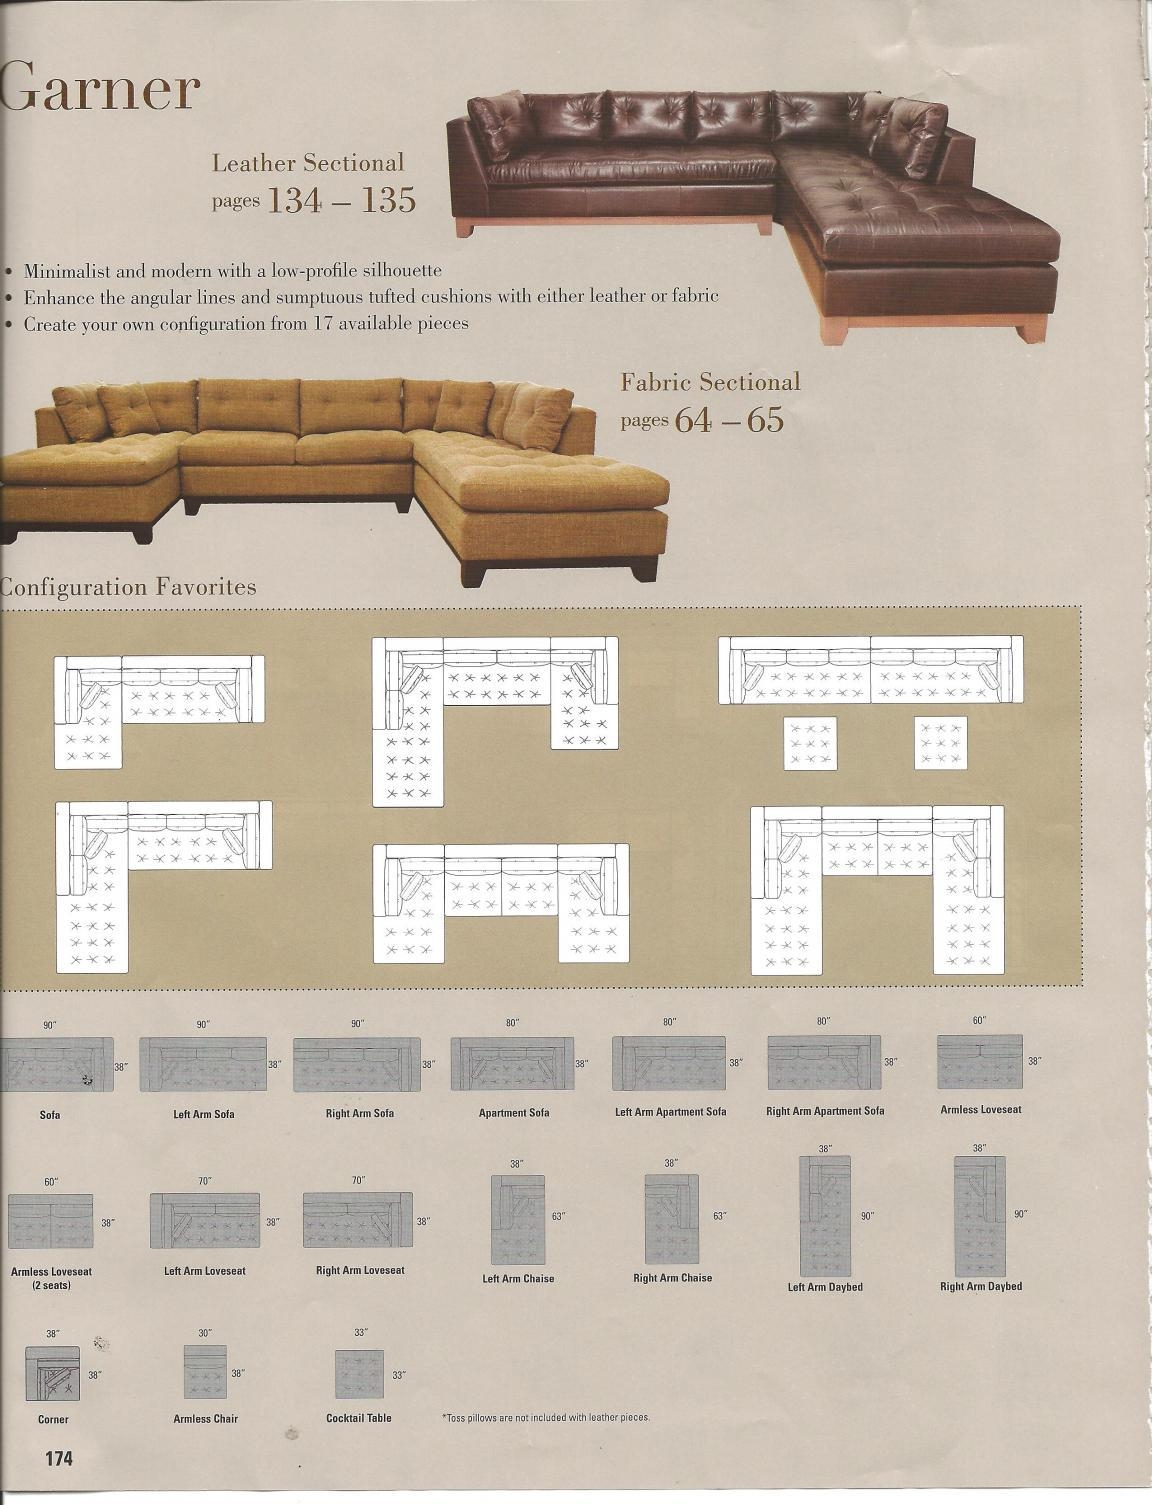 Furniture: Loveseat And Chaise Sectional | Arhaus Sectional With Regard To Arhaus Emory Sectional (Image 11 of 15)